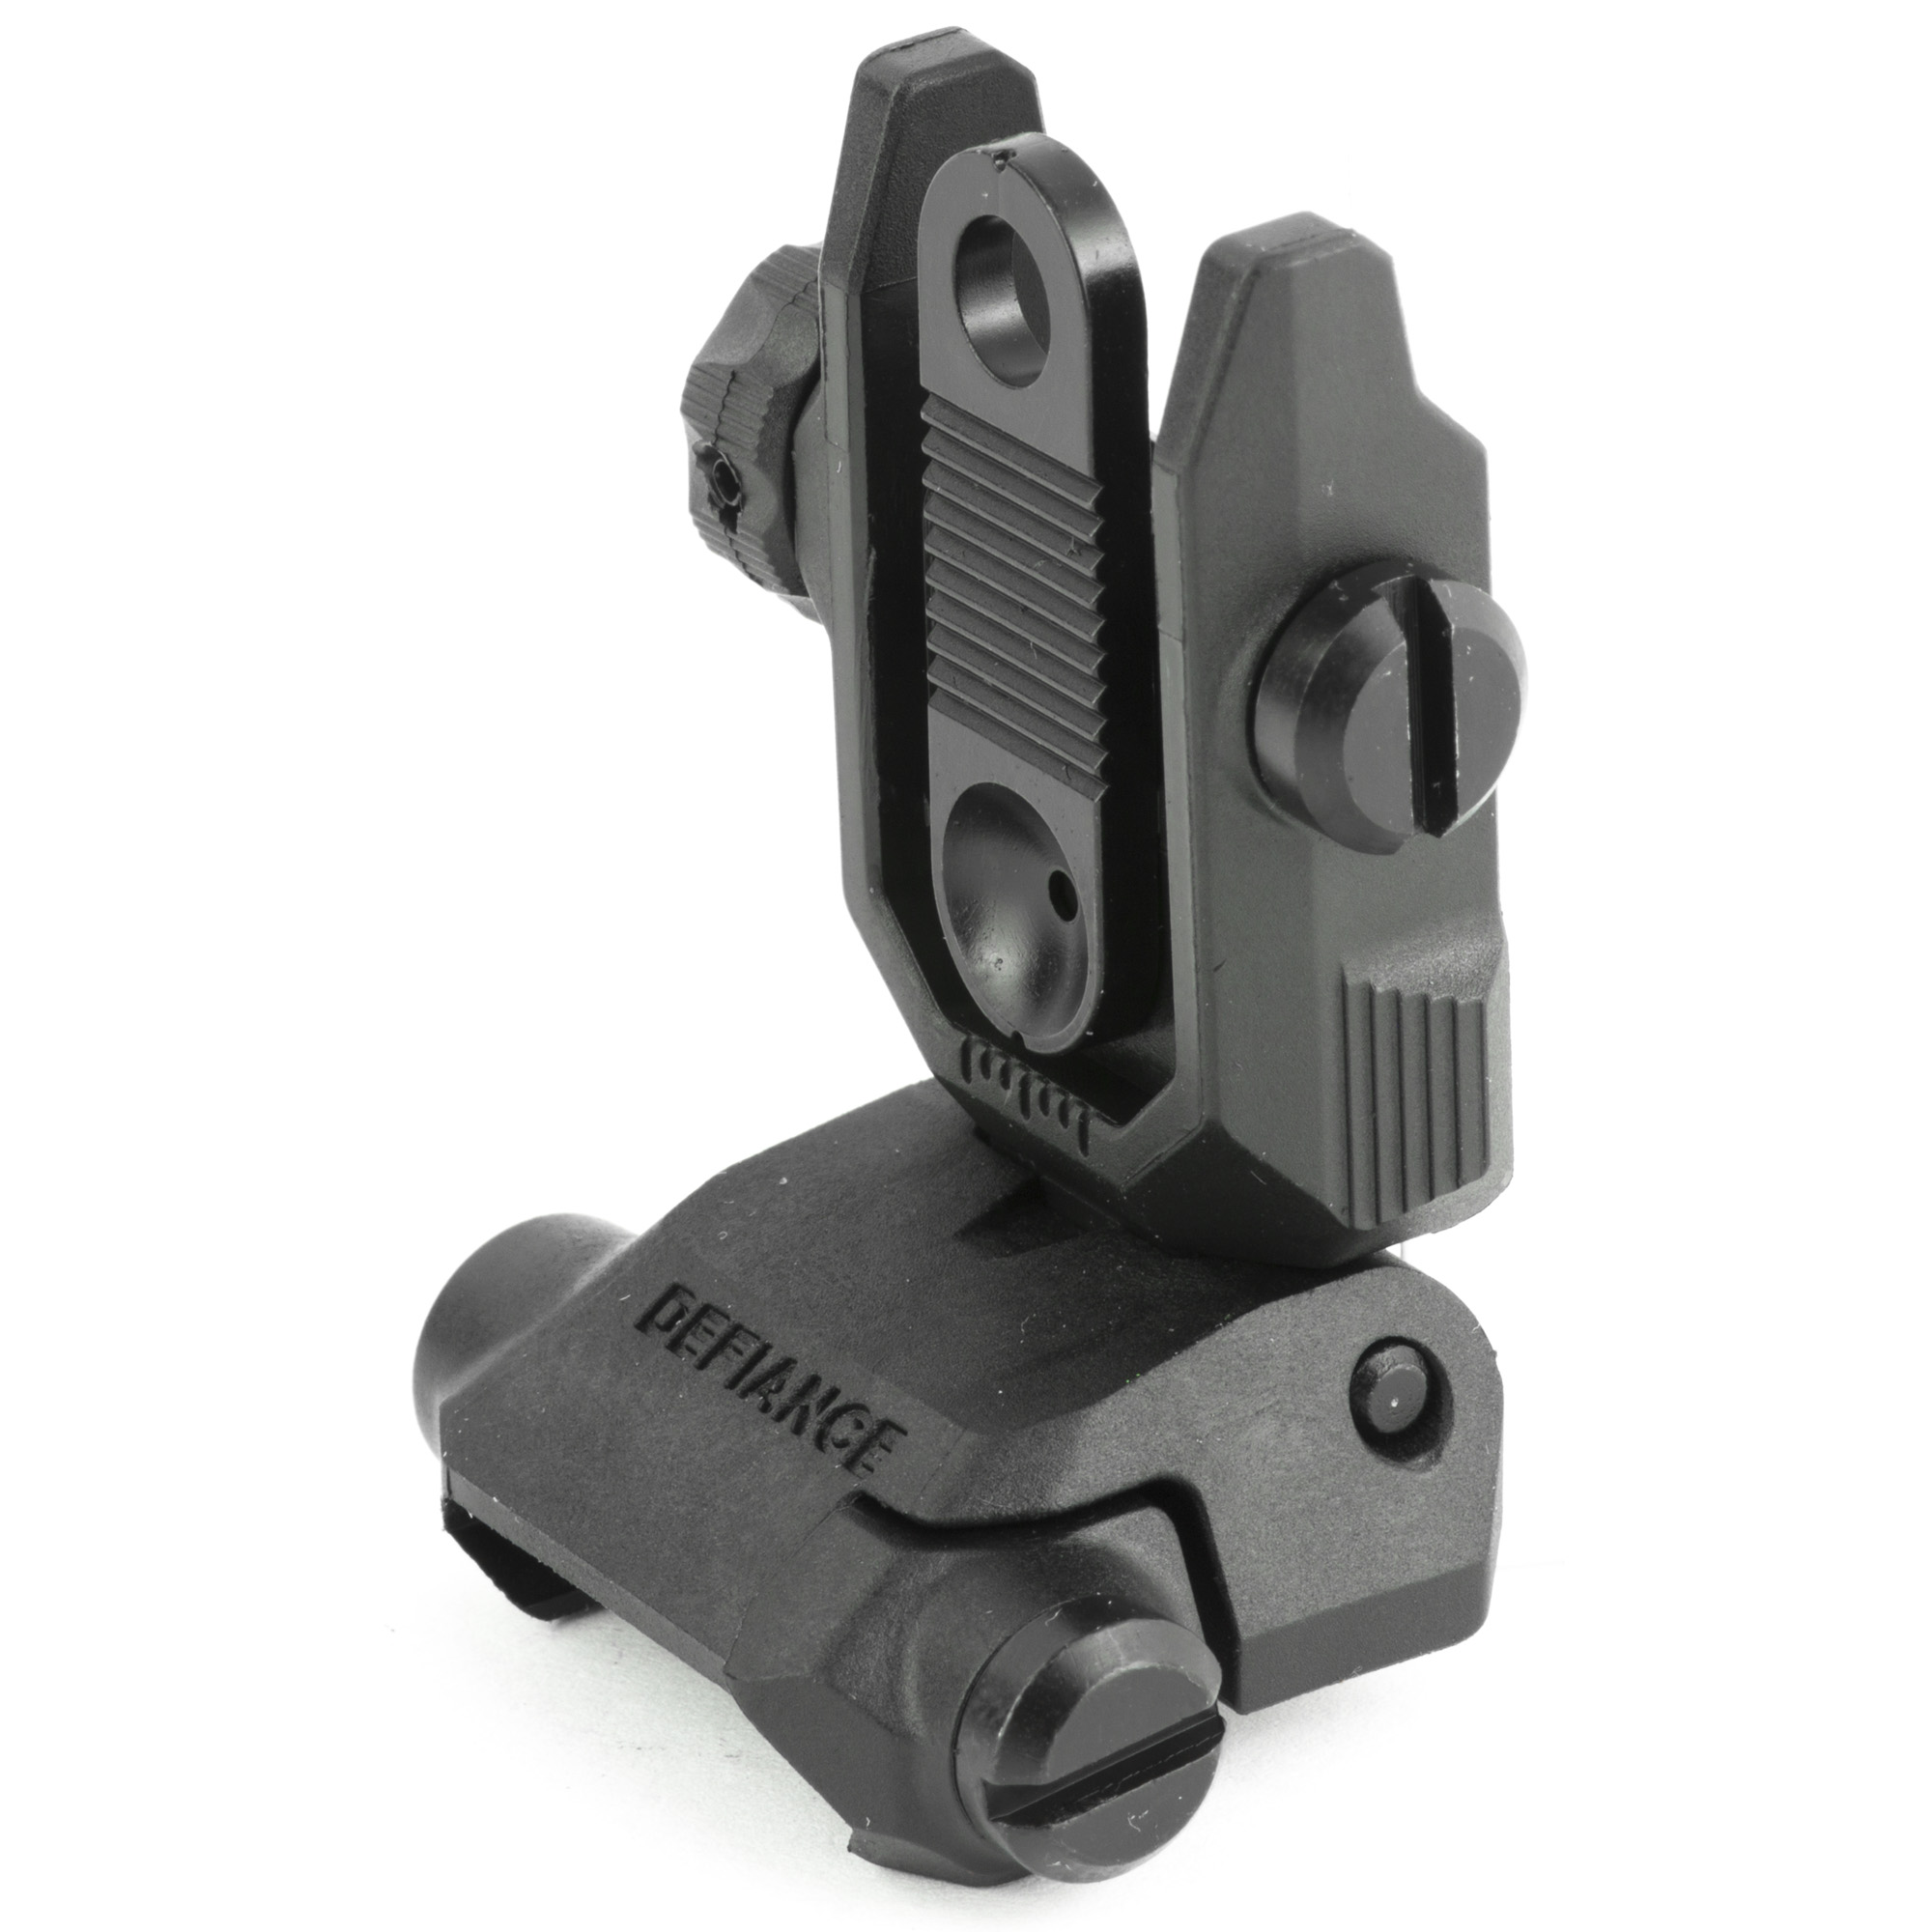 """Kriss USA Low Profile flip up rear sight is the same OEM rear flip up sight that come standard with the Kriss Vector and DKM22 firearm platforms. The sight provides you with an extremely low profile rear sight which will tuck completely out of the way when folded resting at a slim .56"""" when folded down in the stowed position. This particular rear sight has dual apertures and a wide range of Windage adjustment. The large textured adjustment knob makes windage changes simple and easy especially if you are operating with a gloved hand."""